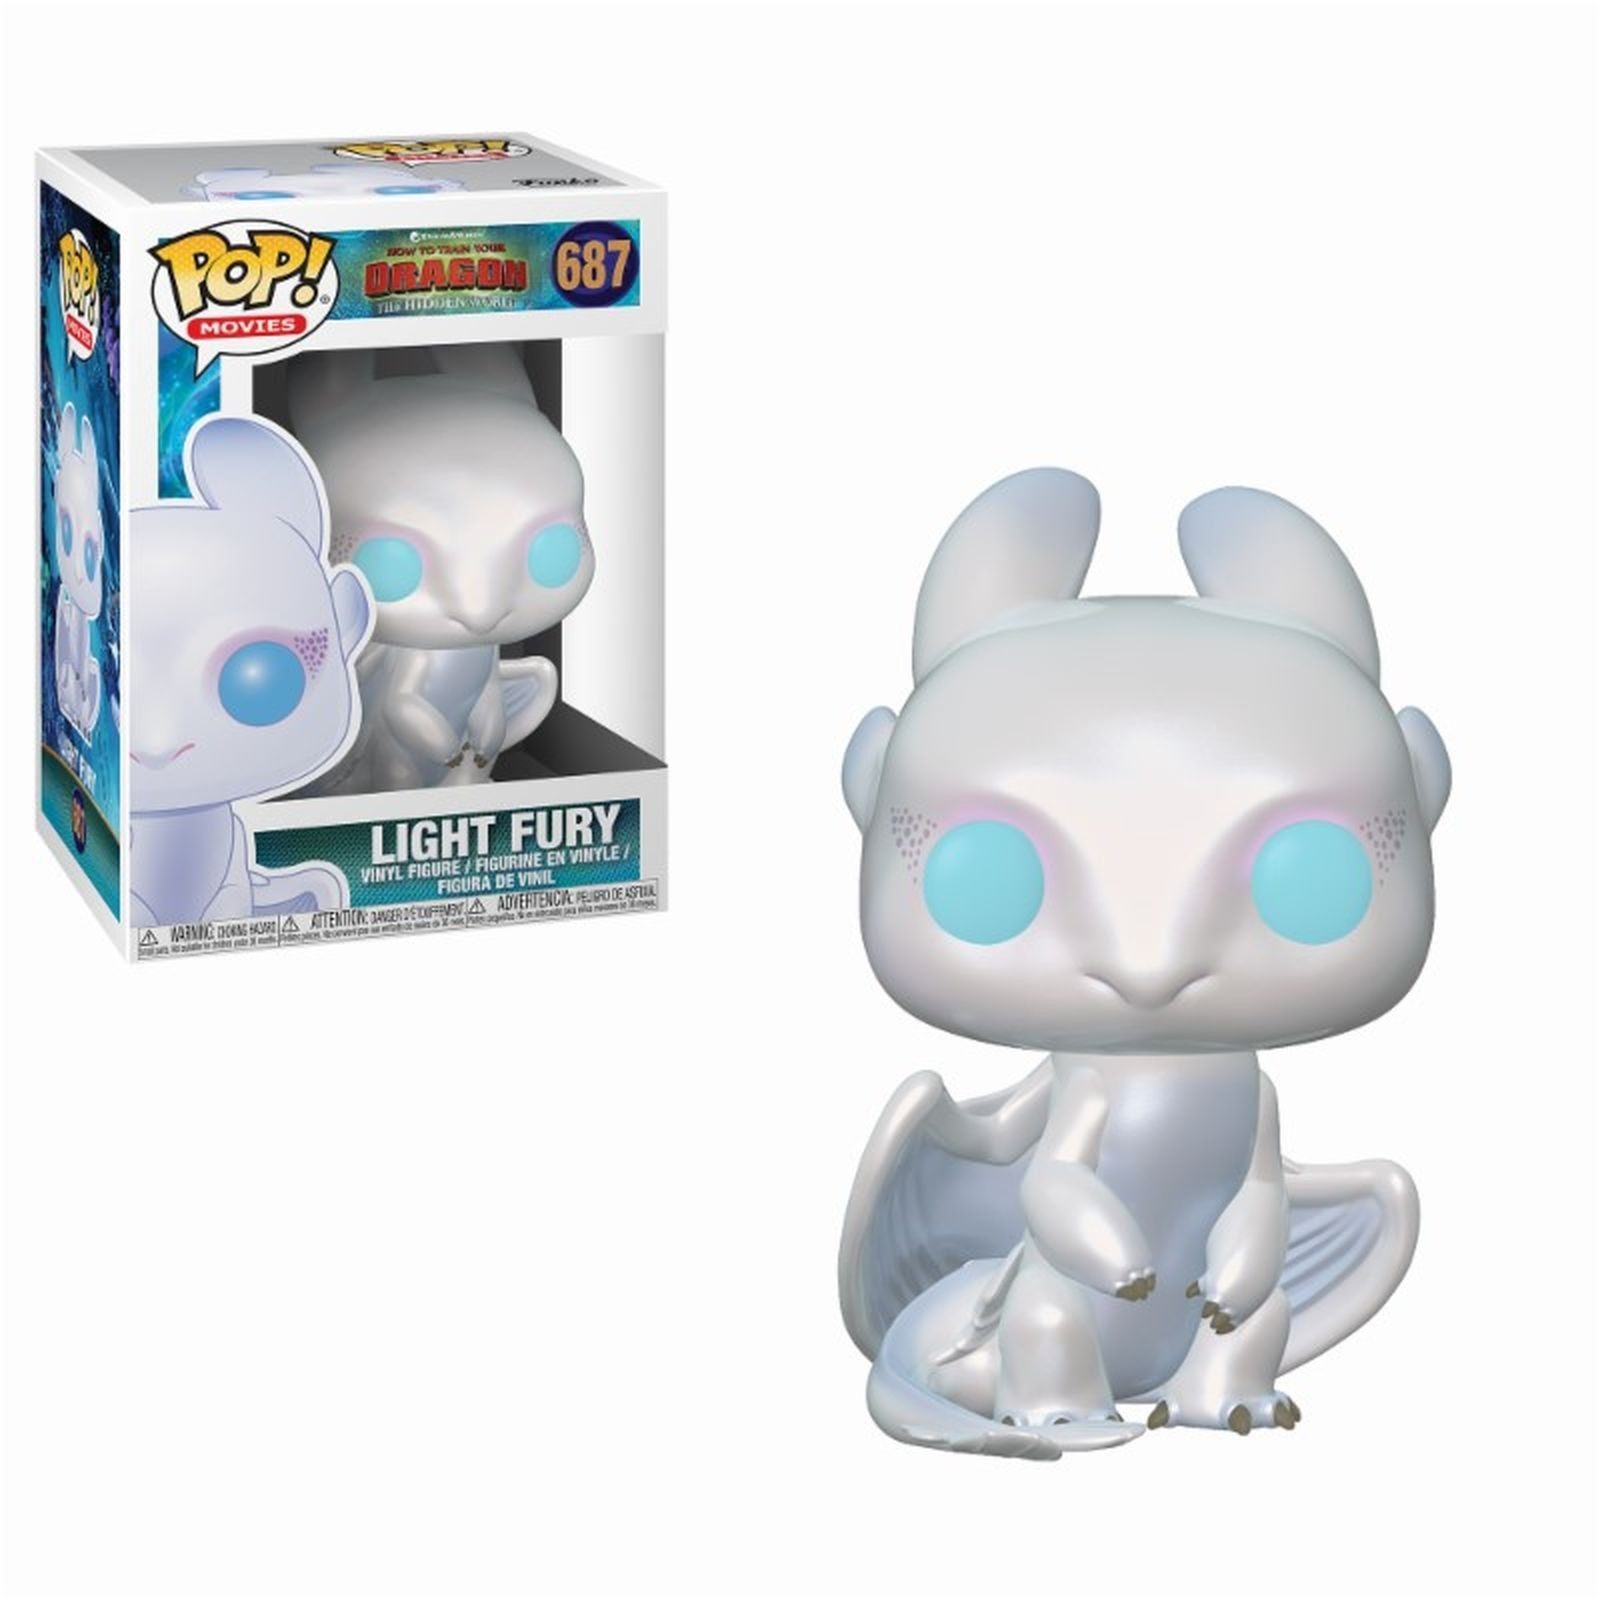 HOW TO TRAIN YOUR DRAGON -  POP! VINYL FIGURE OF LIGHT FURY (4 INCH) -  HOW TO TRAIN YOUR DRAGON 3: THE HIDDEN WORLD 687